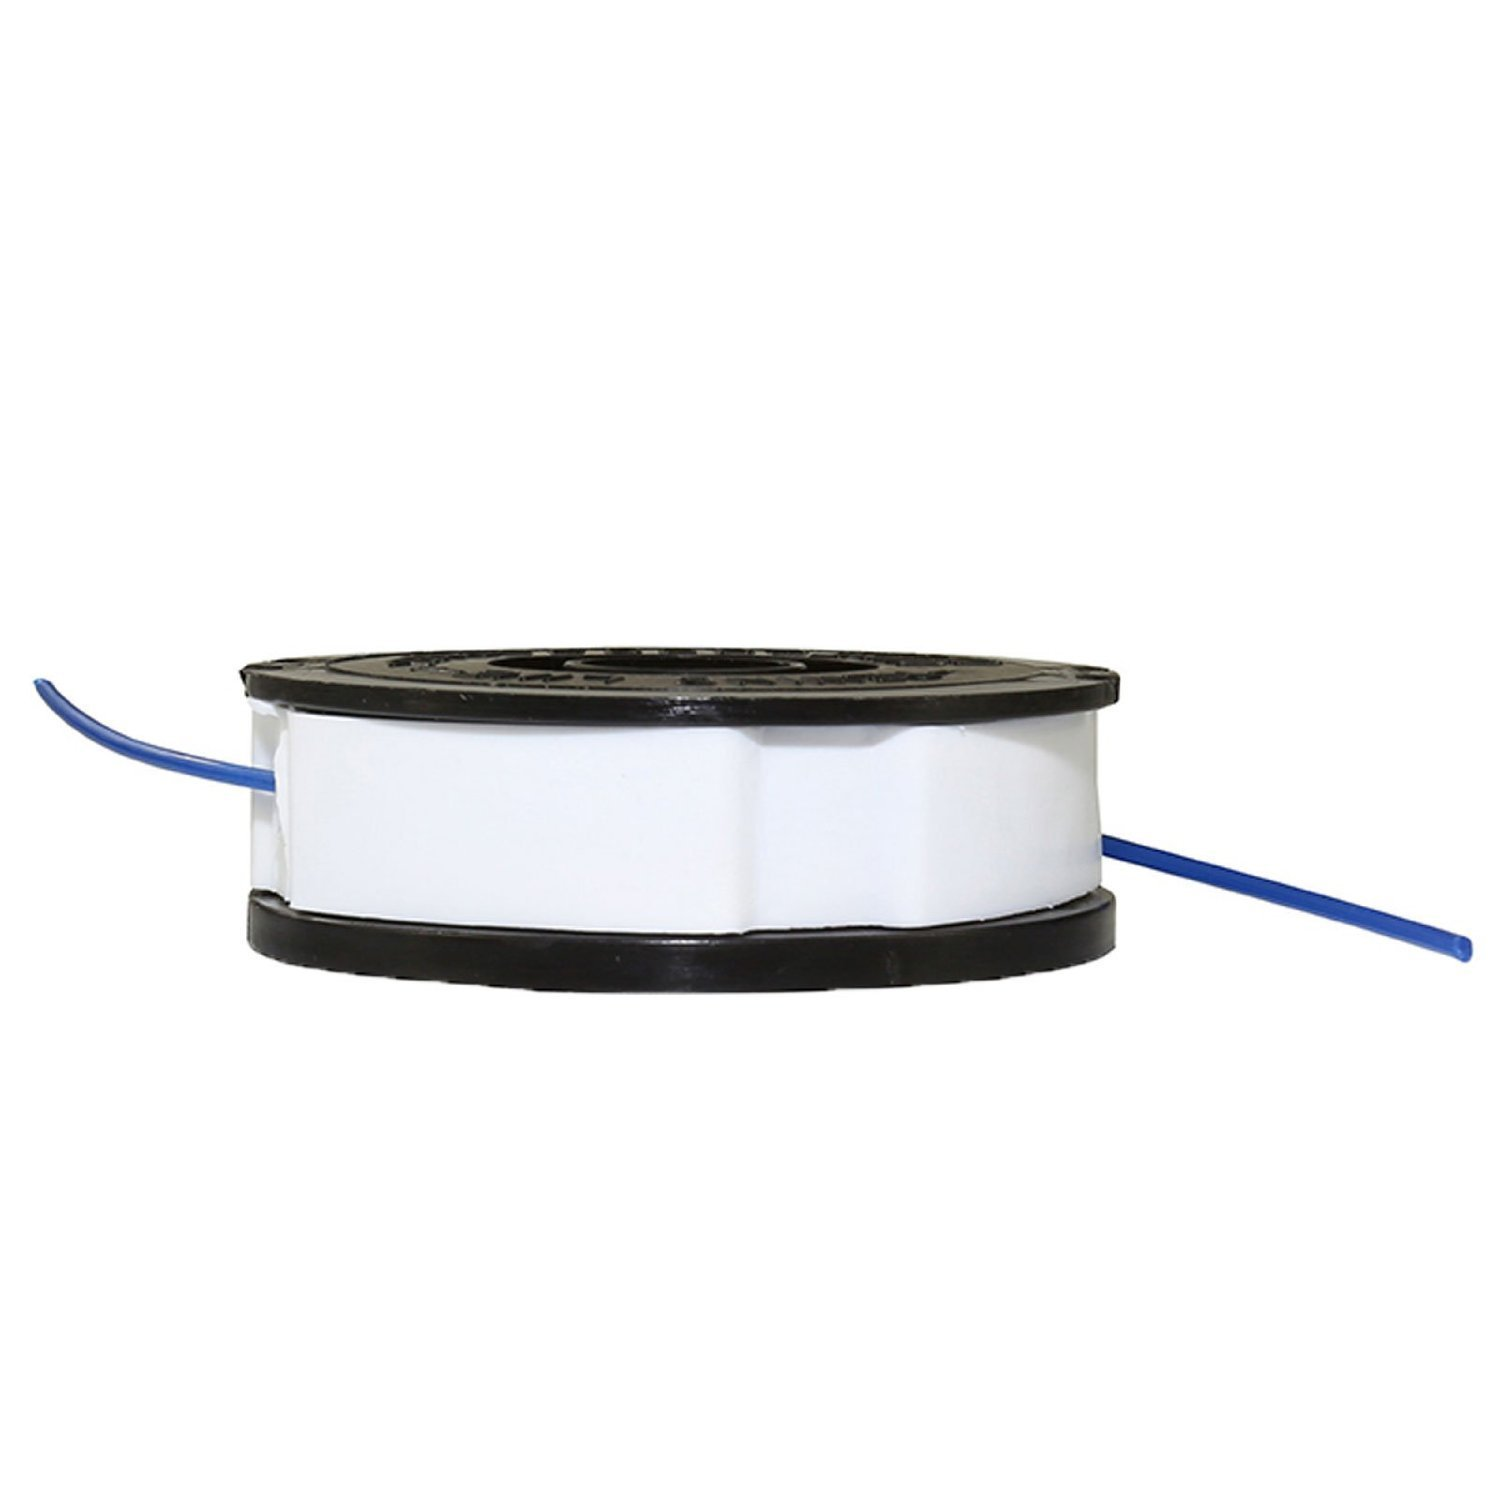 MacAllister First4Spares High Quality Double Feed Replacement Spool /& Line for Most Qualcast Florabest Performance Power JCB /& Grizzly Strimmers Parkside Draper